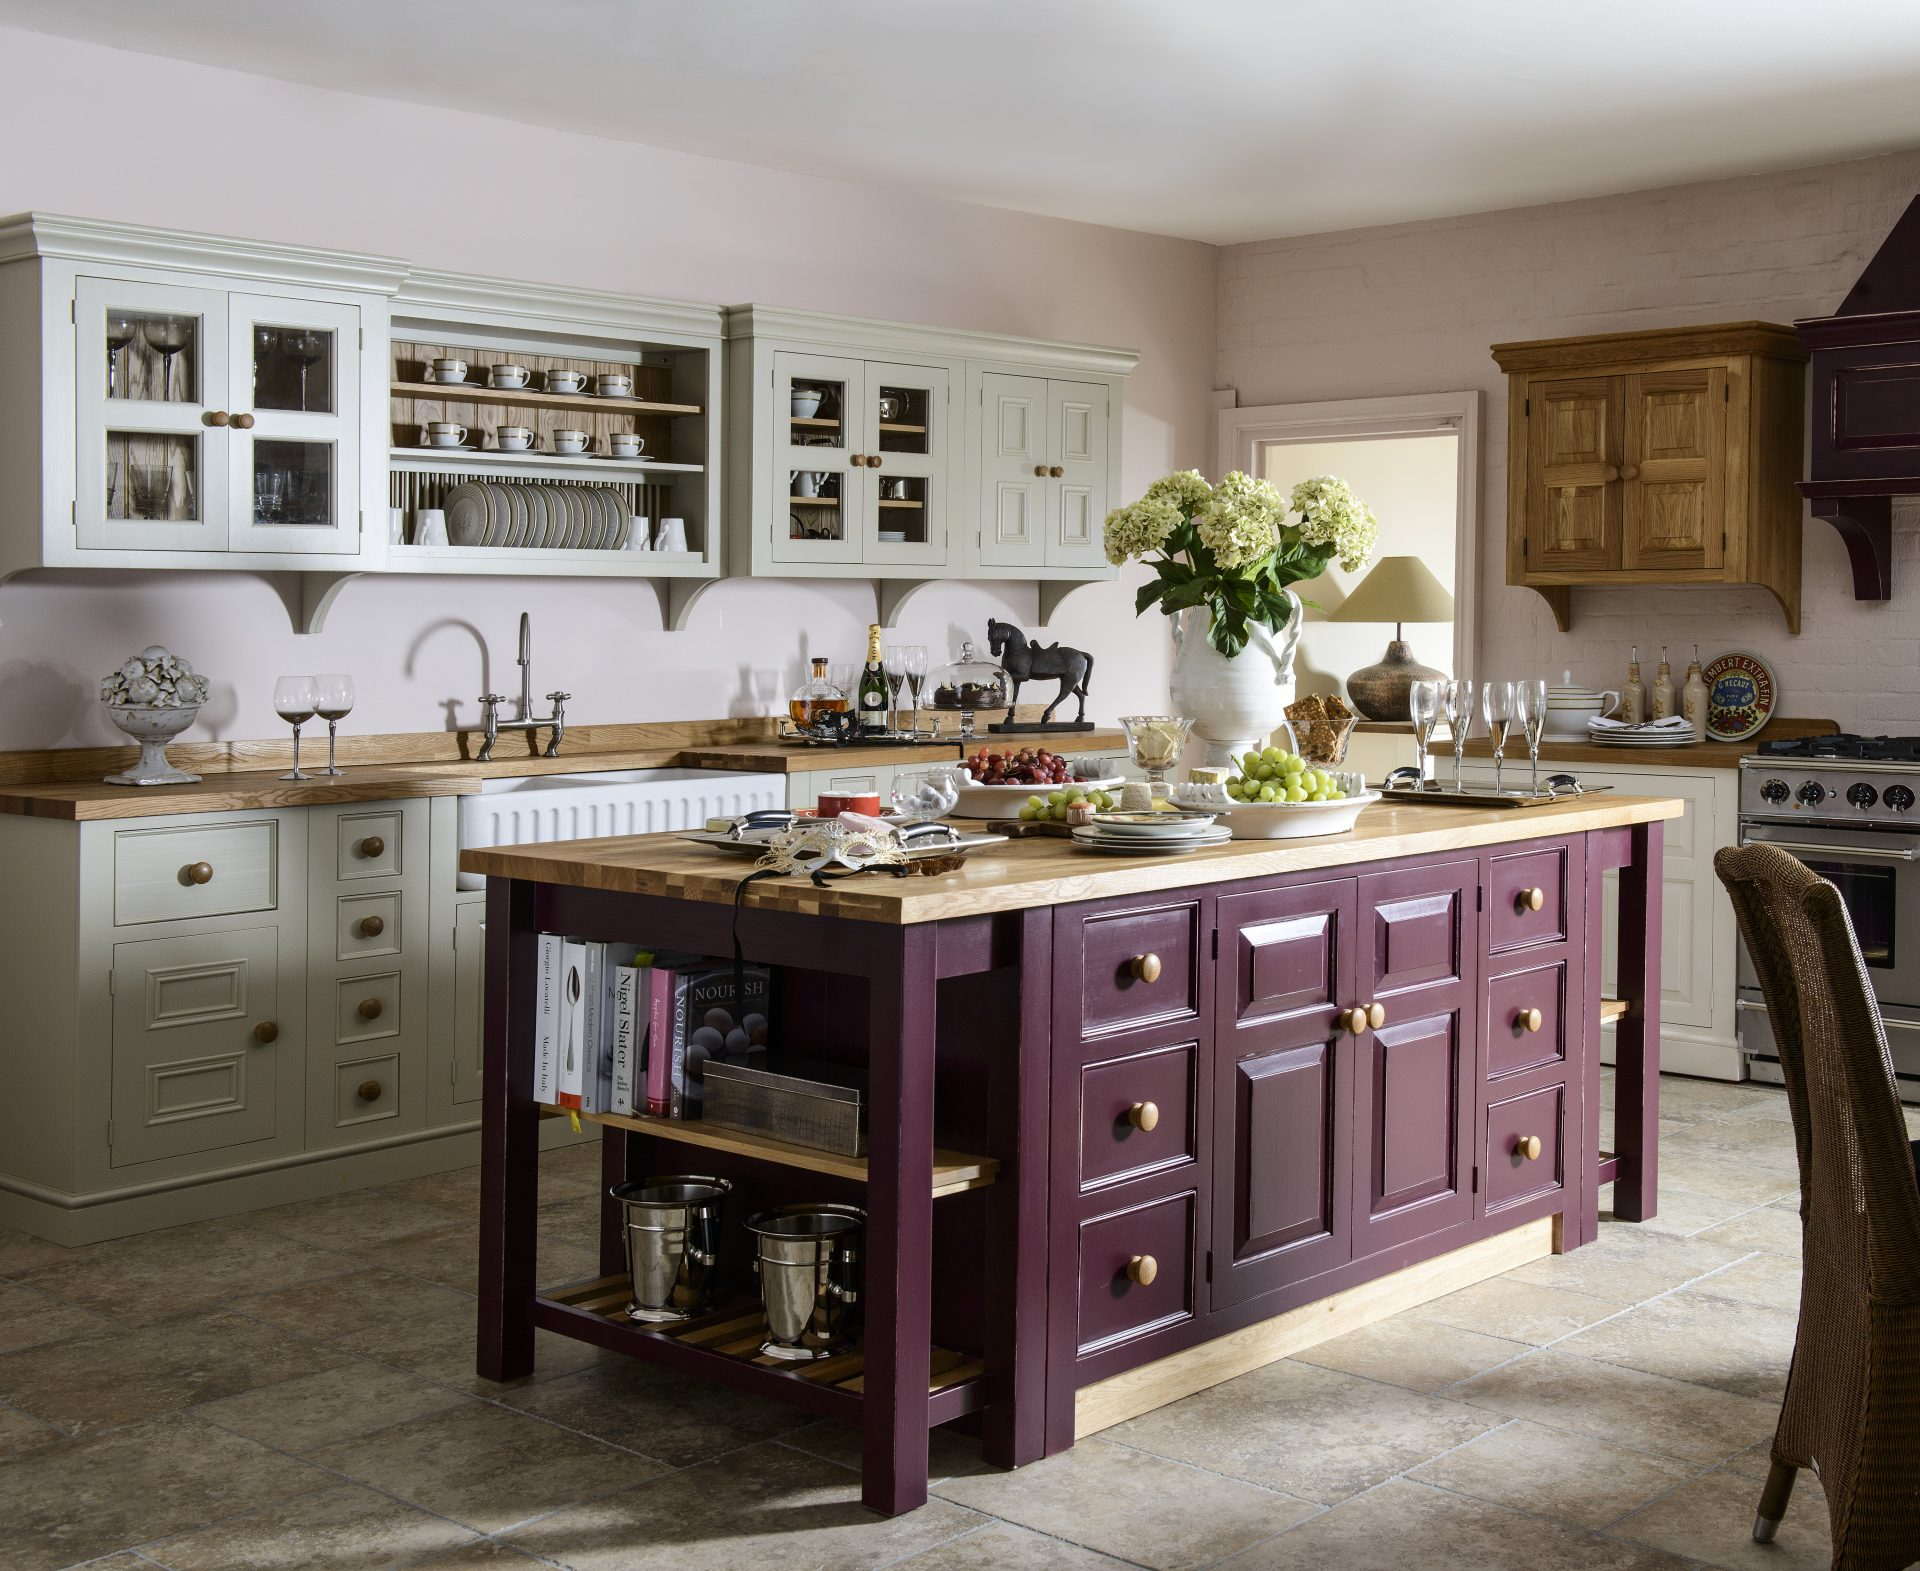 Provencal kitchen price guide